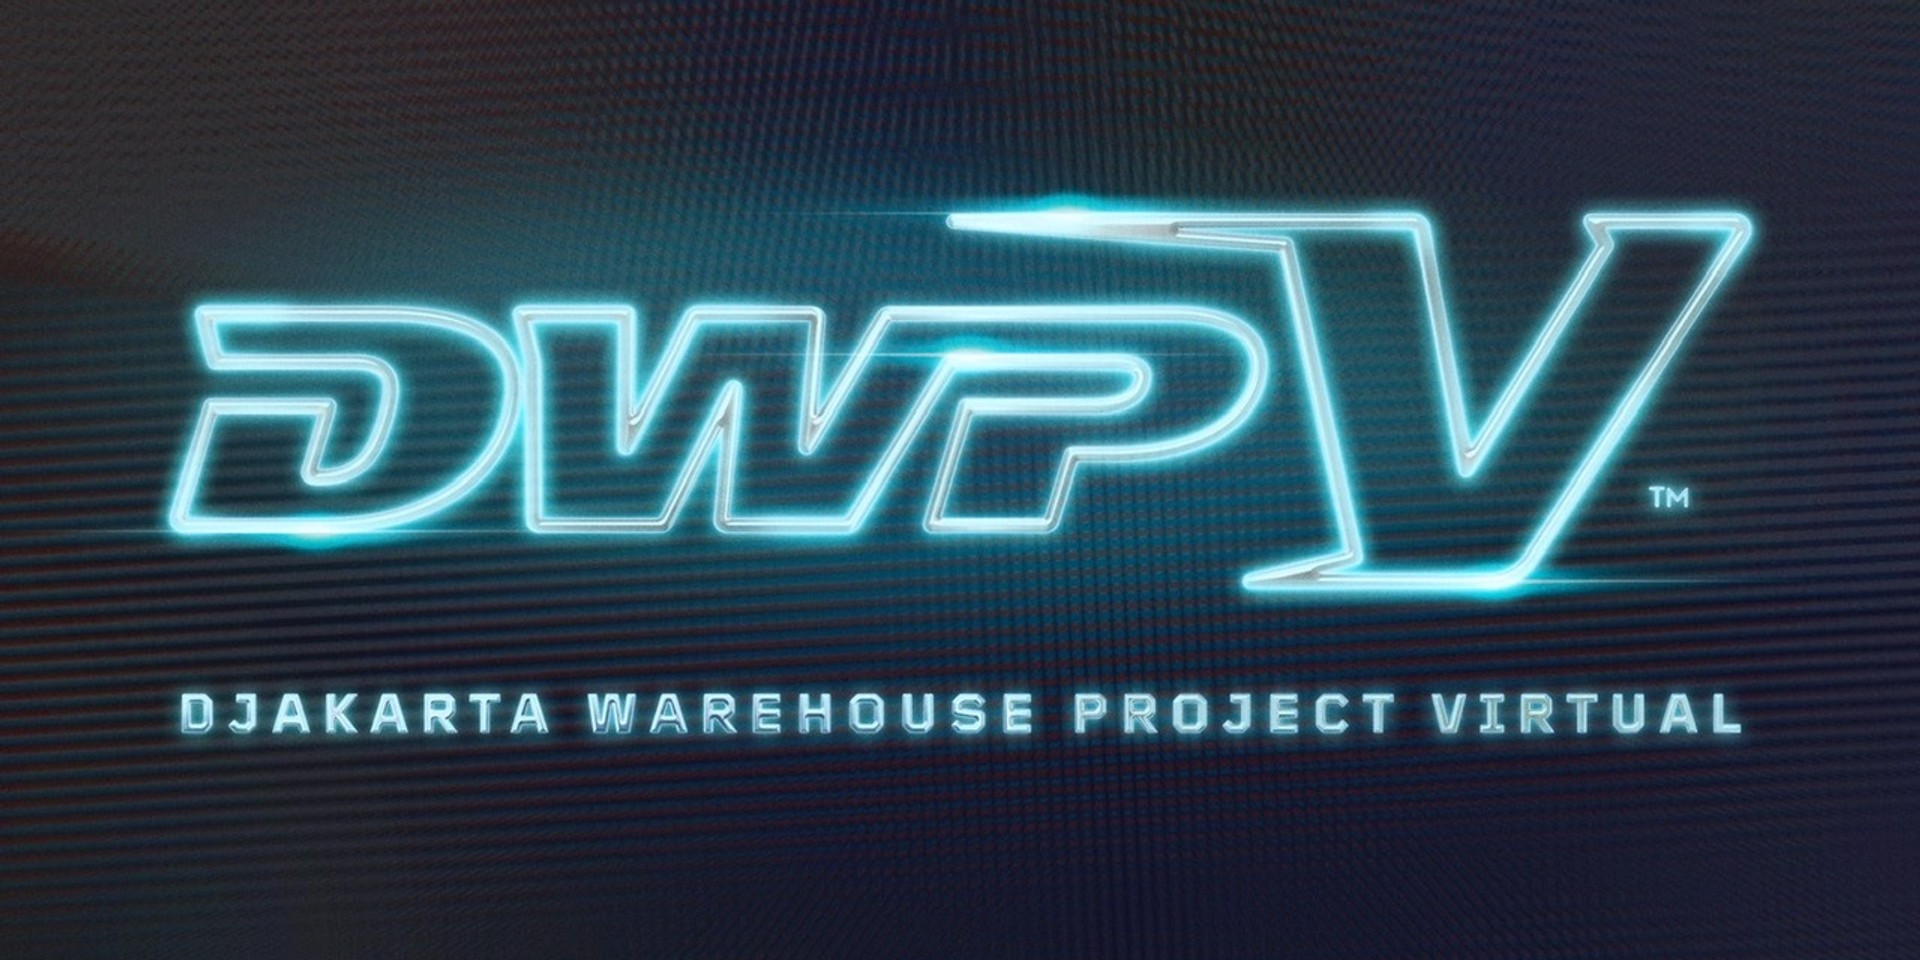 Djakarta Warehouse Project is going virtual this December 2020